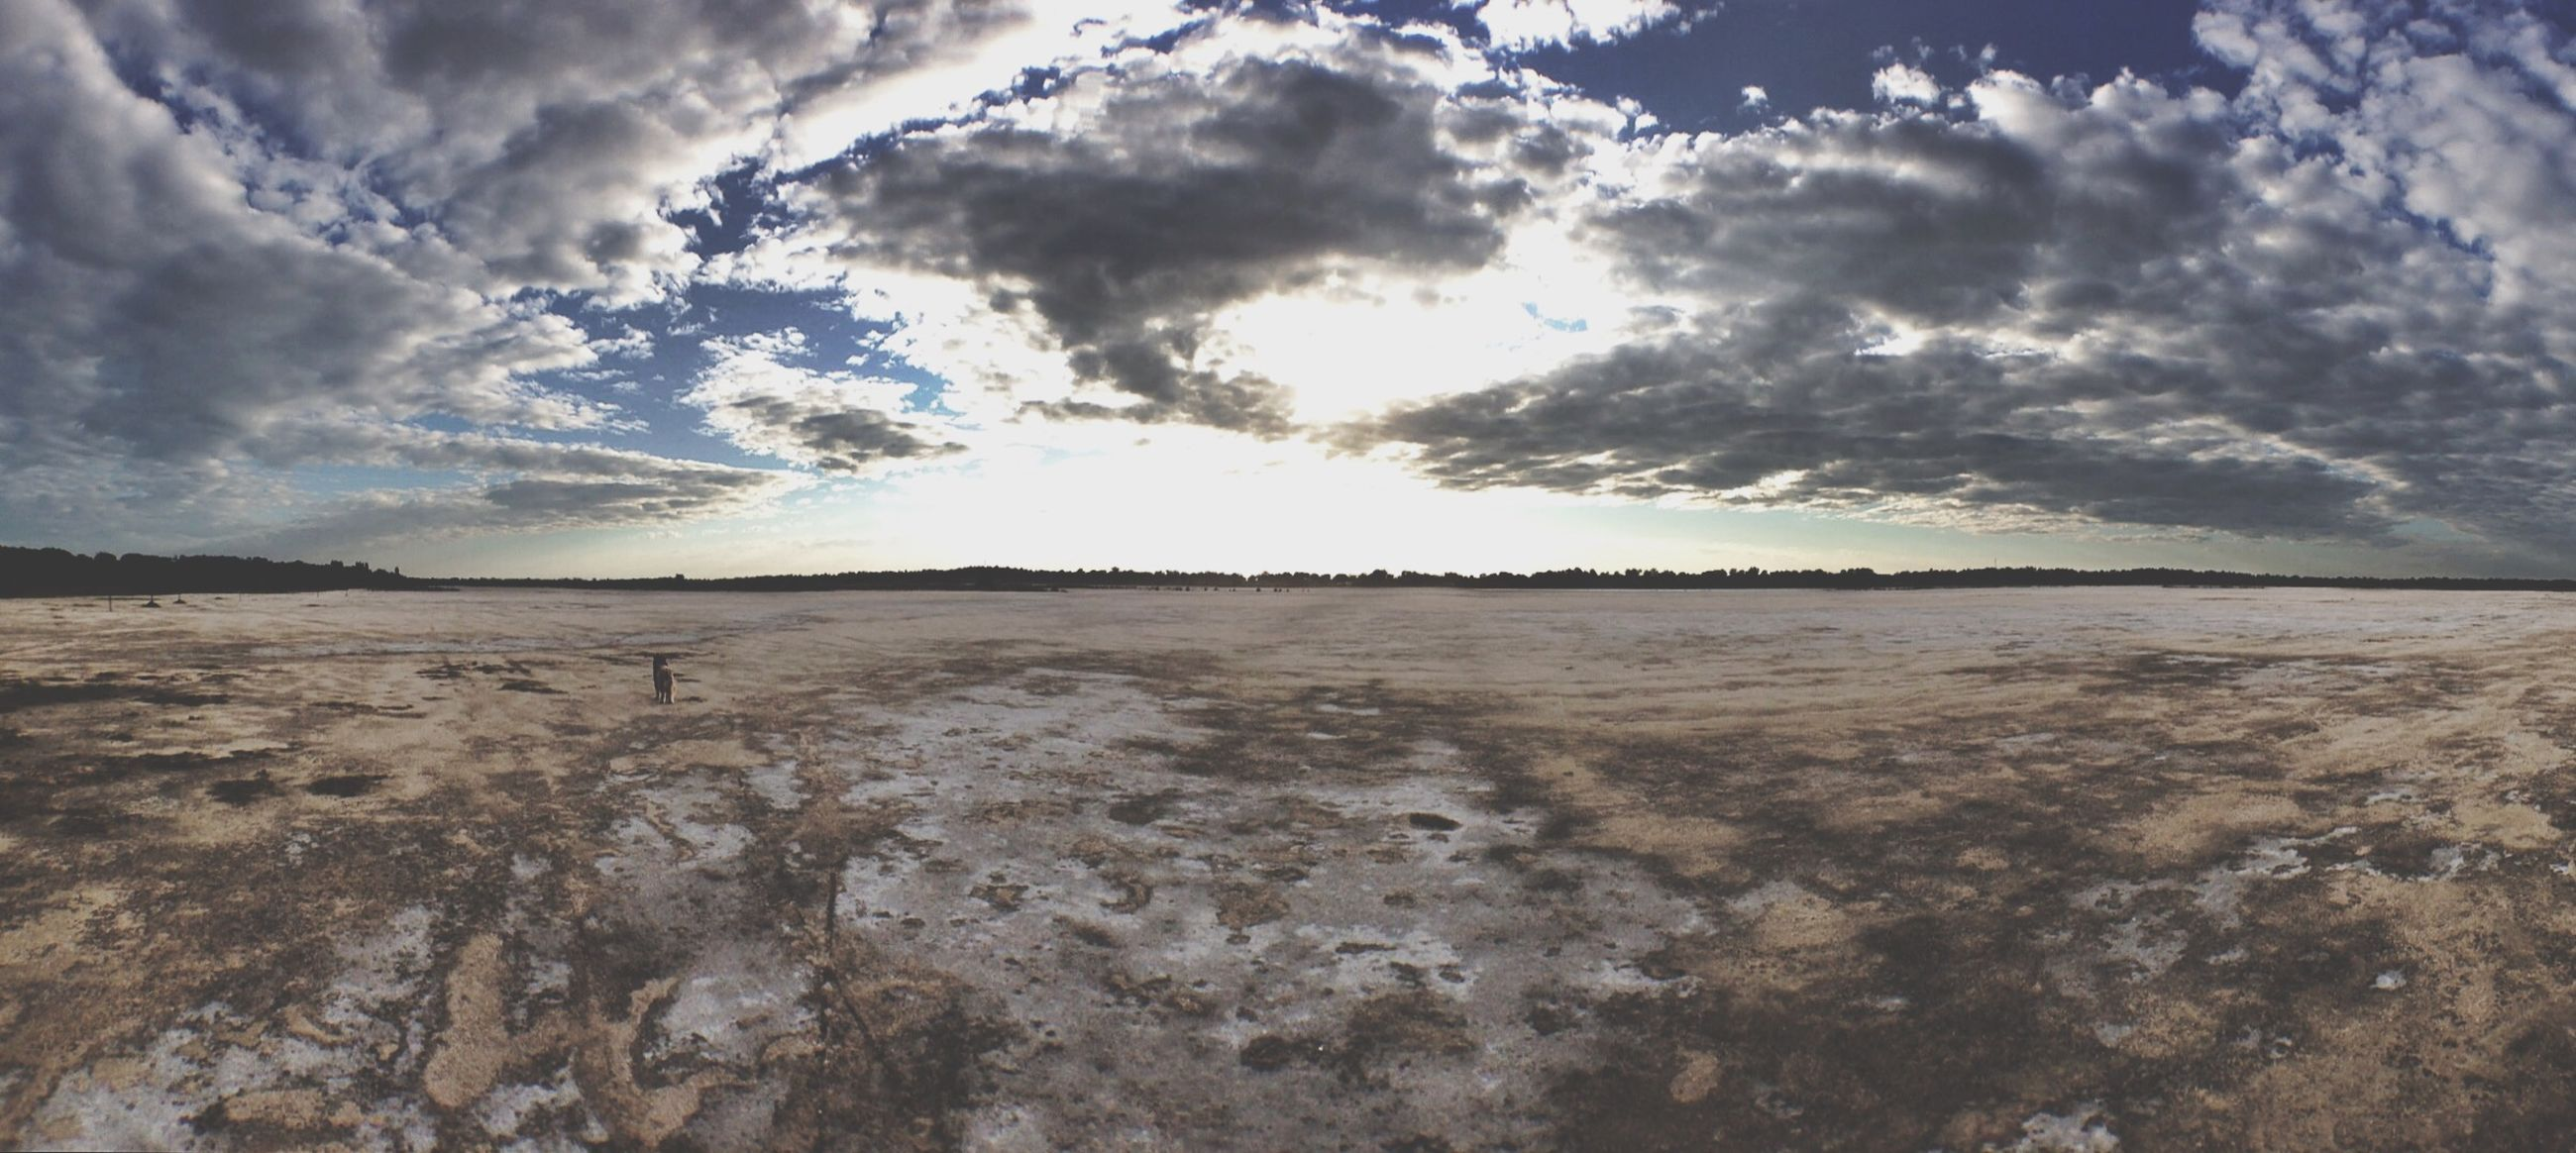 sky, tranquility, cloud - sky, nature, tranquil scene, scenics, low angle view, beauty in nature, textured, cloudy, cloud, outdoors, rough, day, no people, idyllic, non-urban scene, weather, rock - object, remote